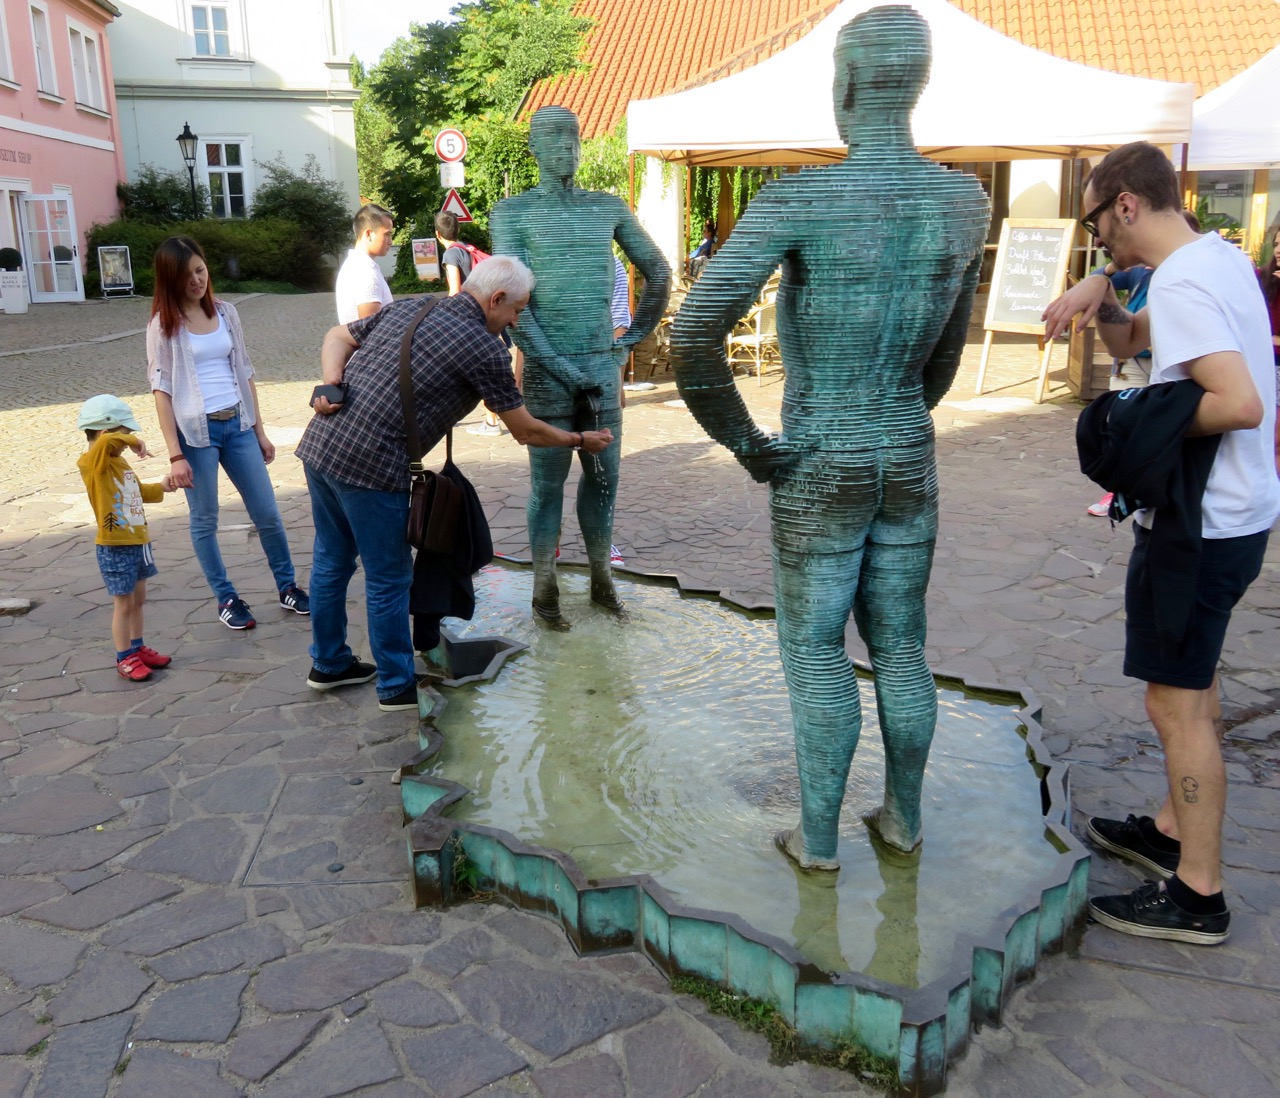 The Peeing Statues - Weird Things in Prague